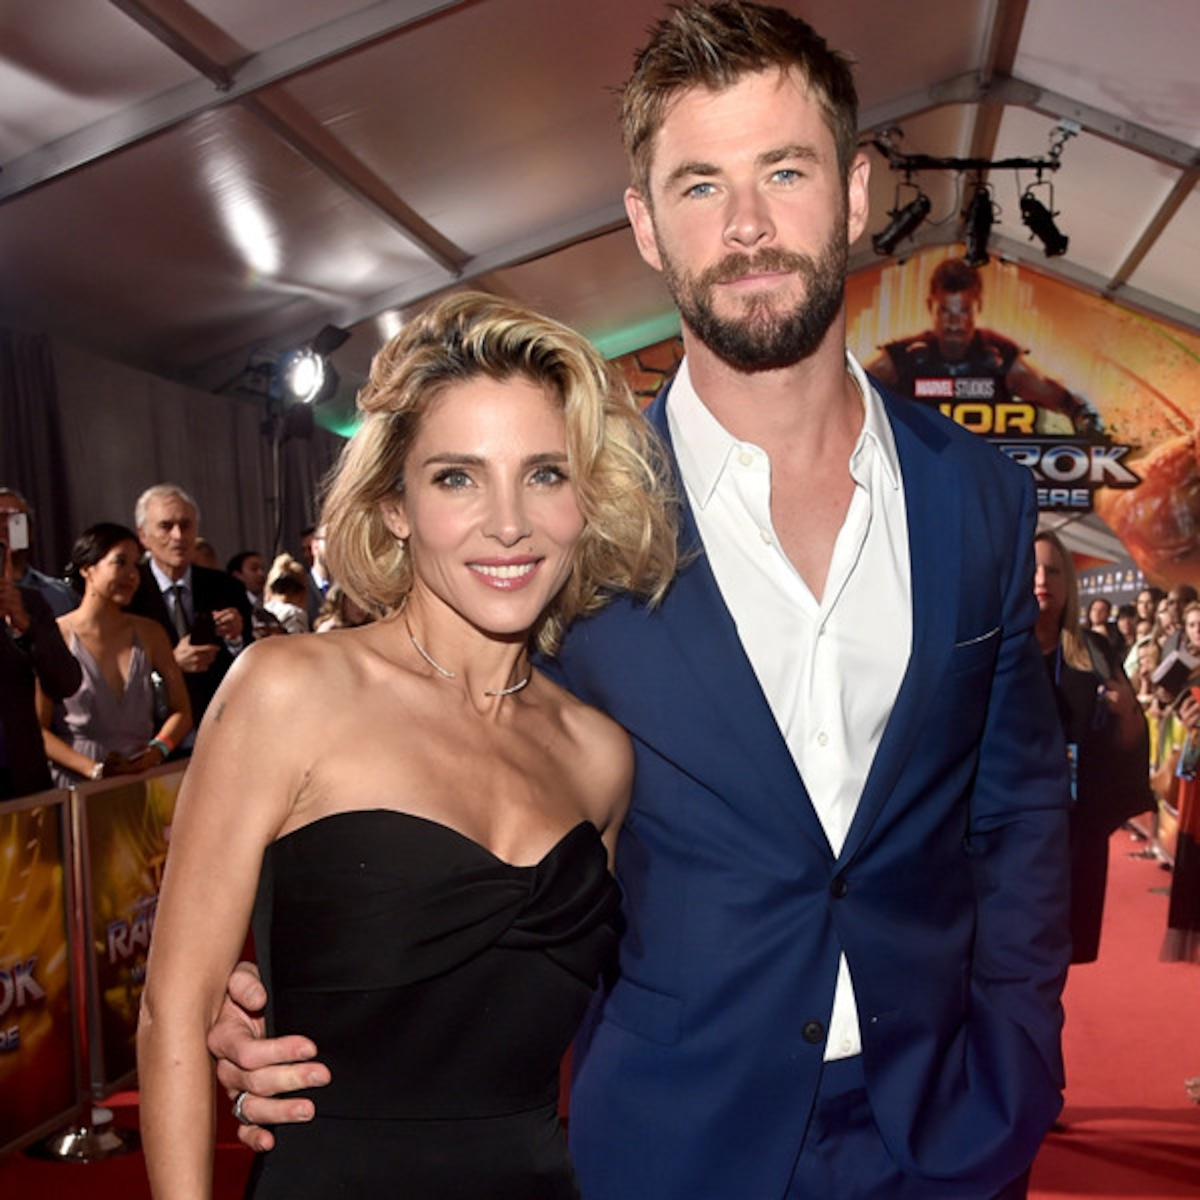 Chris Hemsworth Reveals The Real Ways He Annoys Wife Elsa Pataky E Online